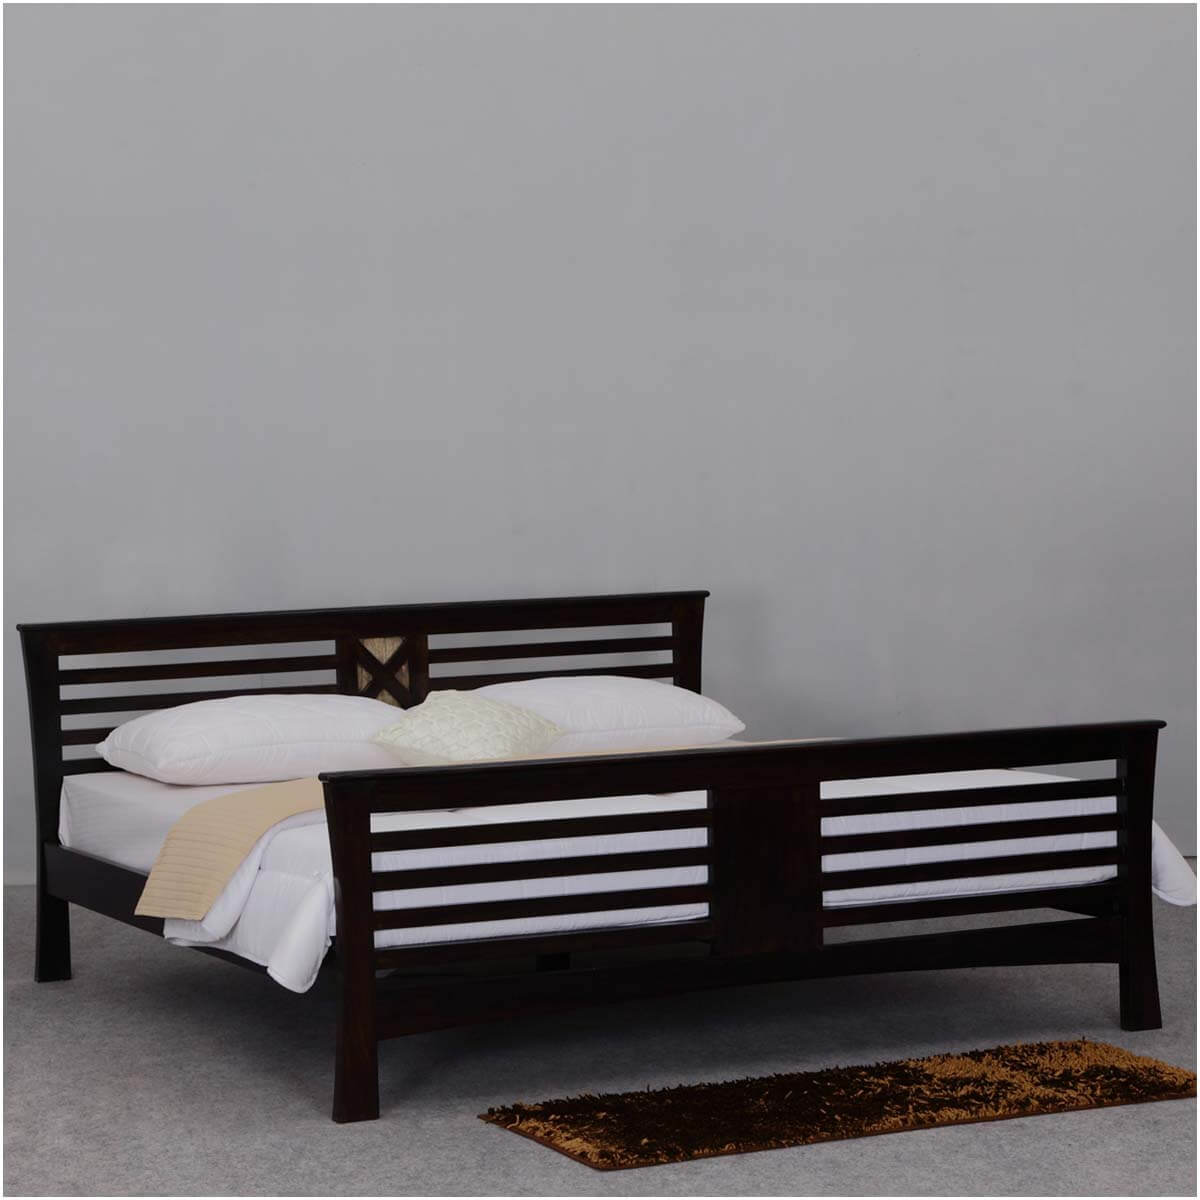 texas solid wood king size platform bed frame w headboard footboard. Black Bedroom Furniture Sets. Home Design Ideas